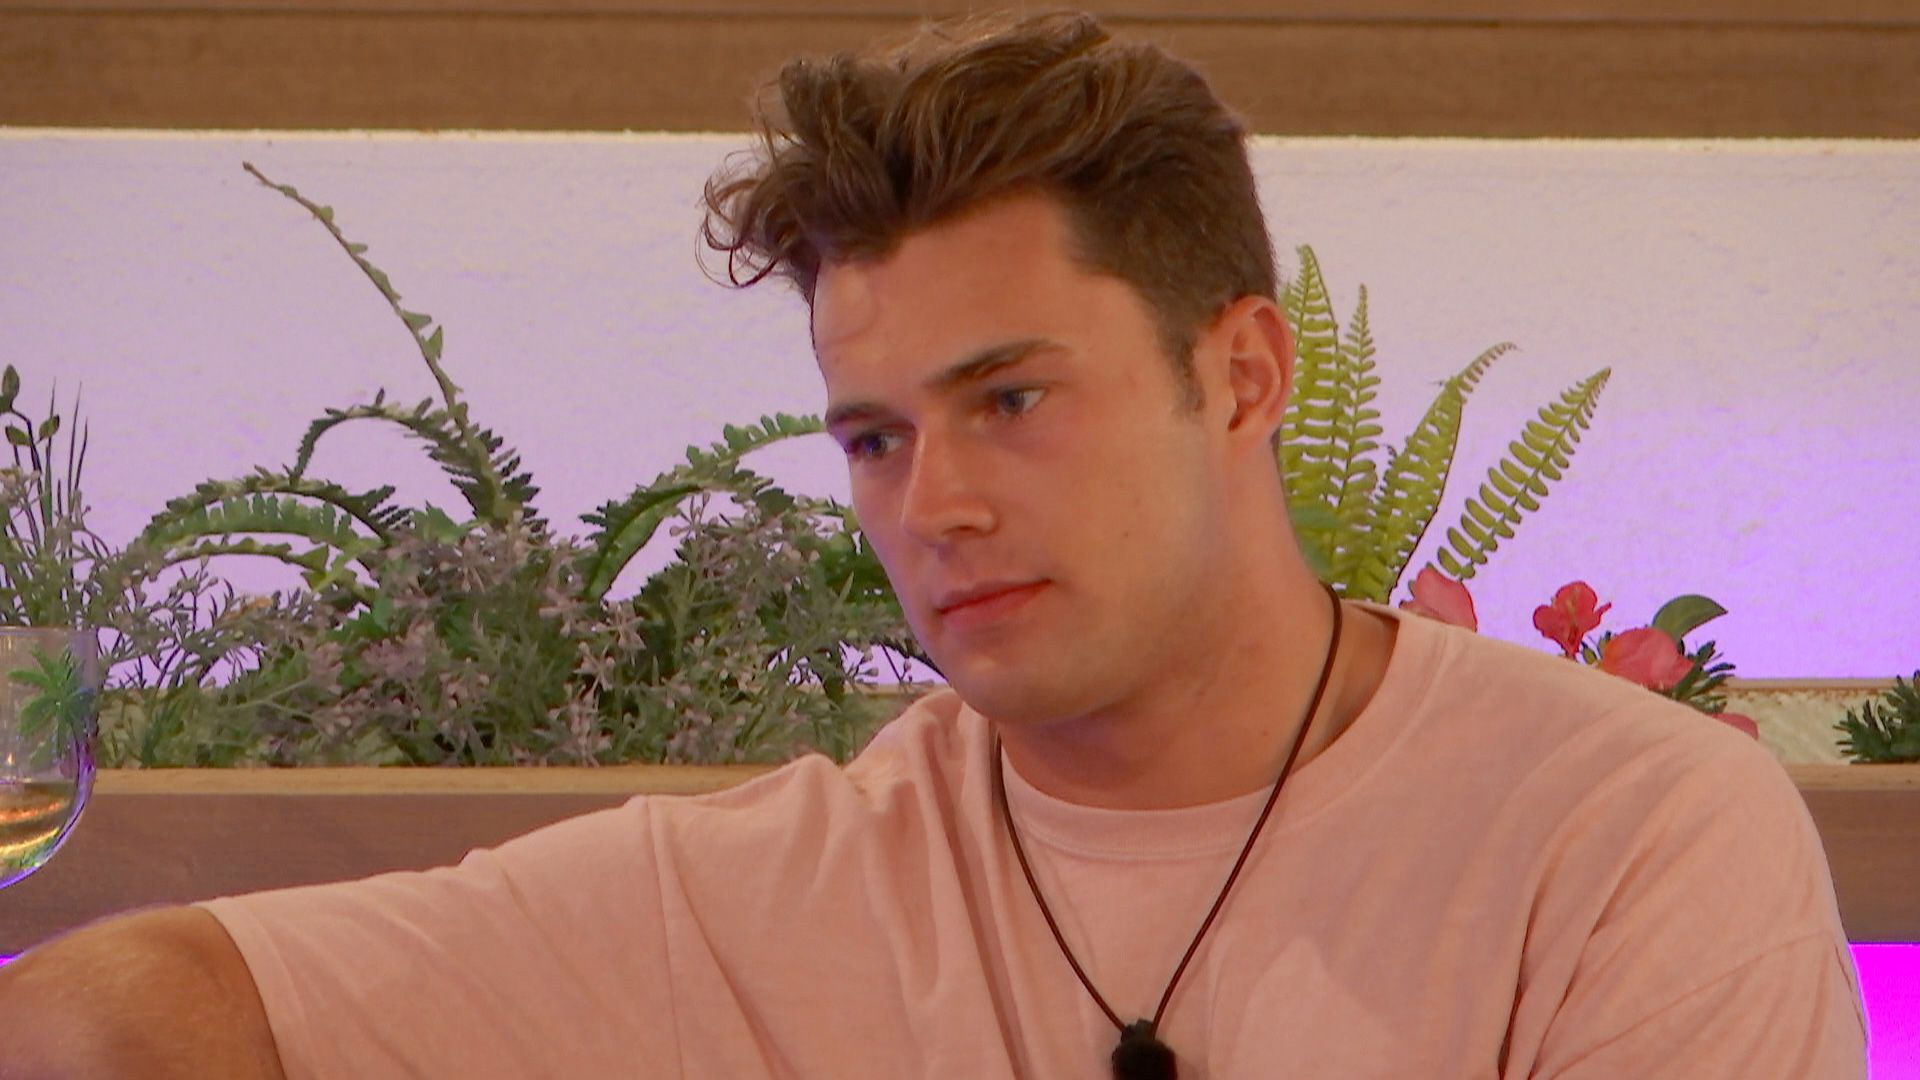 2a3f94e2fa Love Island star Curtis Pritchard's habit is making fans uncomfortable.